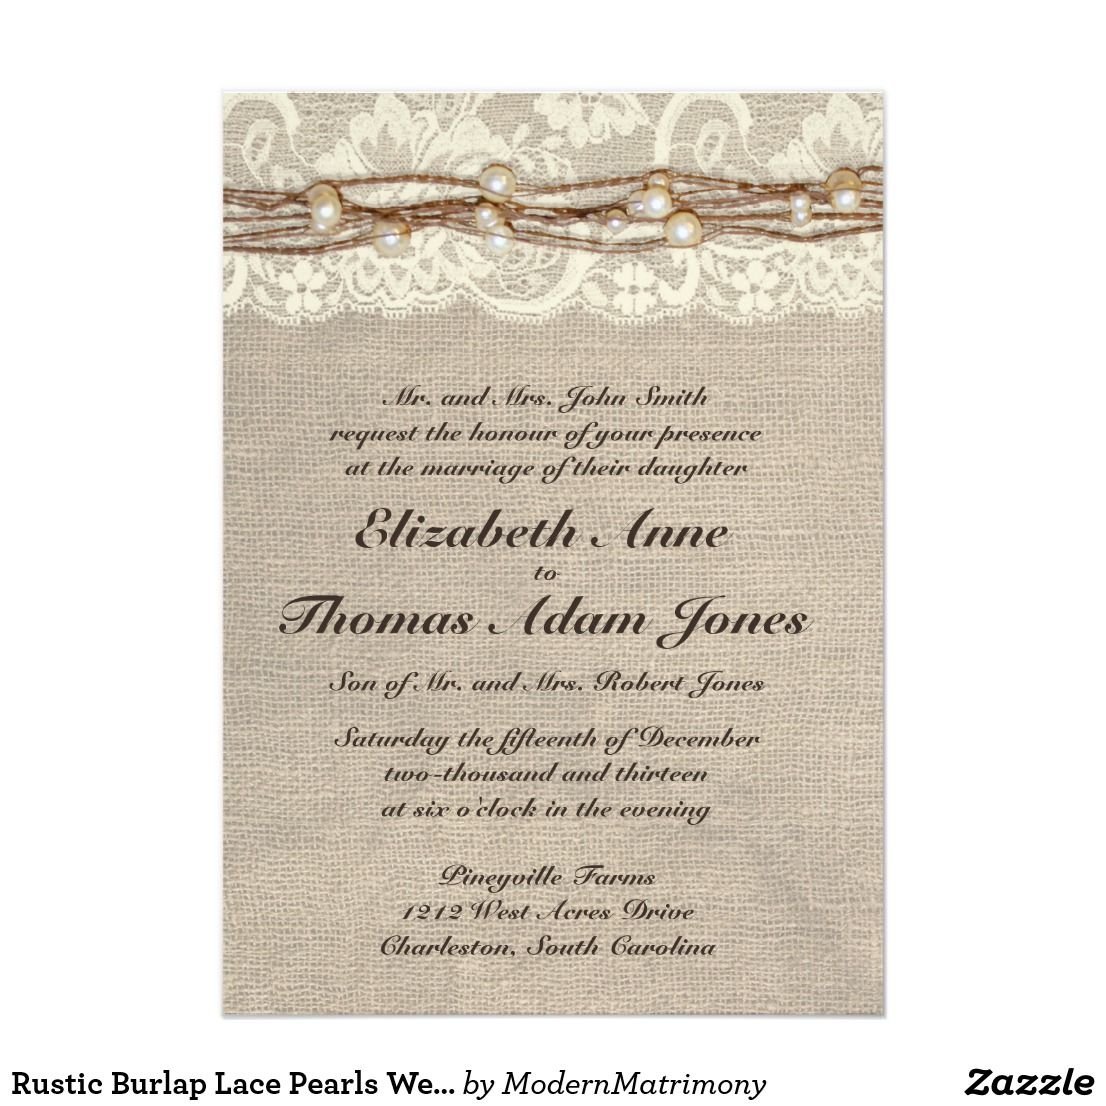 Rustic Burlap Lace Pearls Wedding Invitation | Burlap lace, Country ...